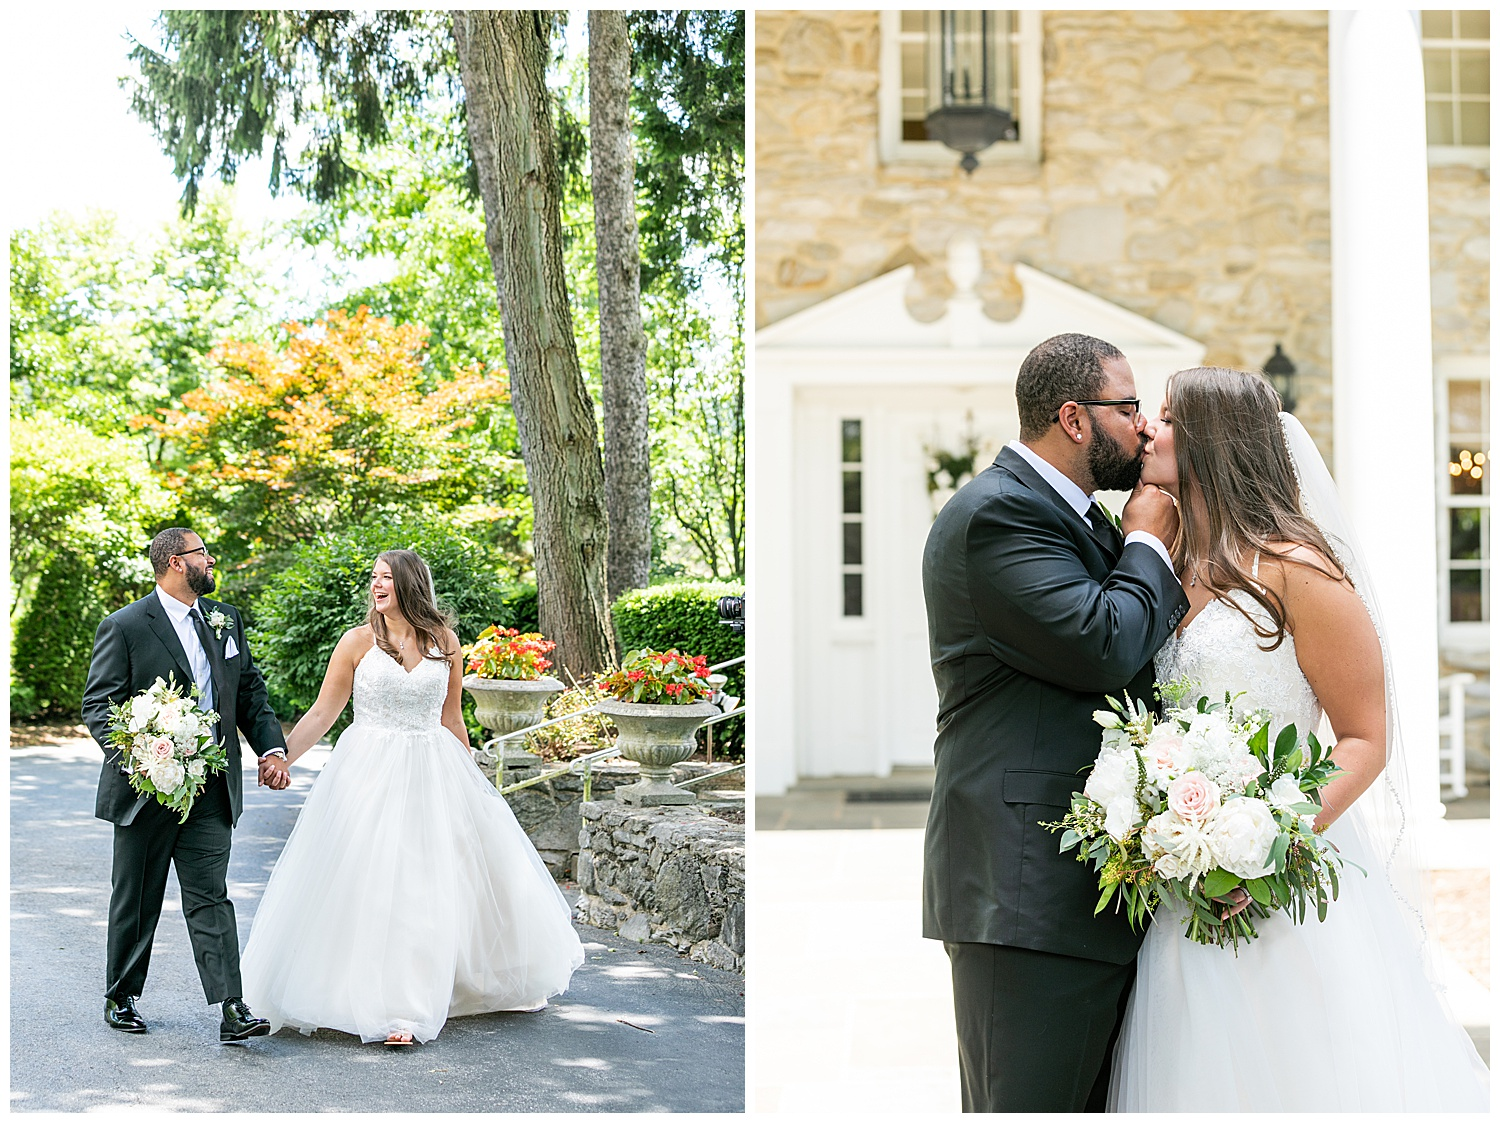 Brittany + Darryl Linwood Estate Wedding Living Radiant Photography photos_0047.jpg